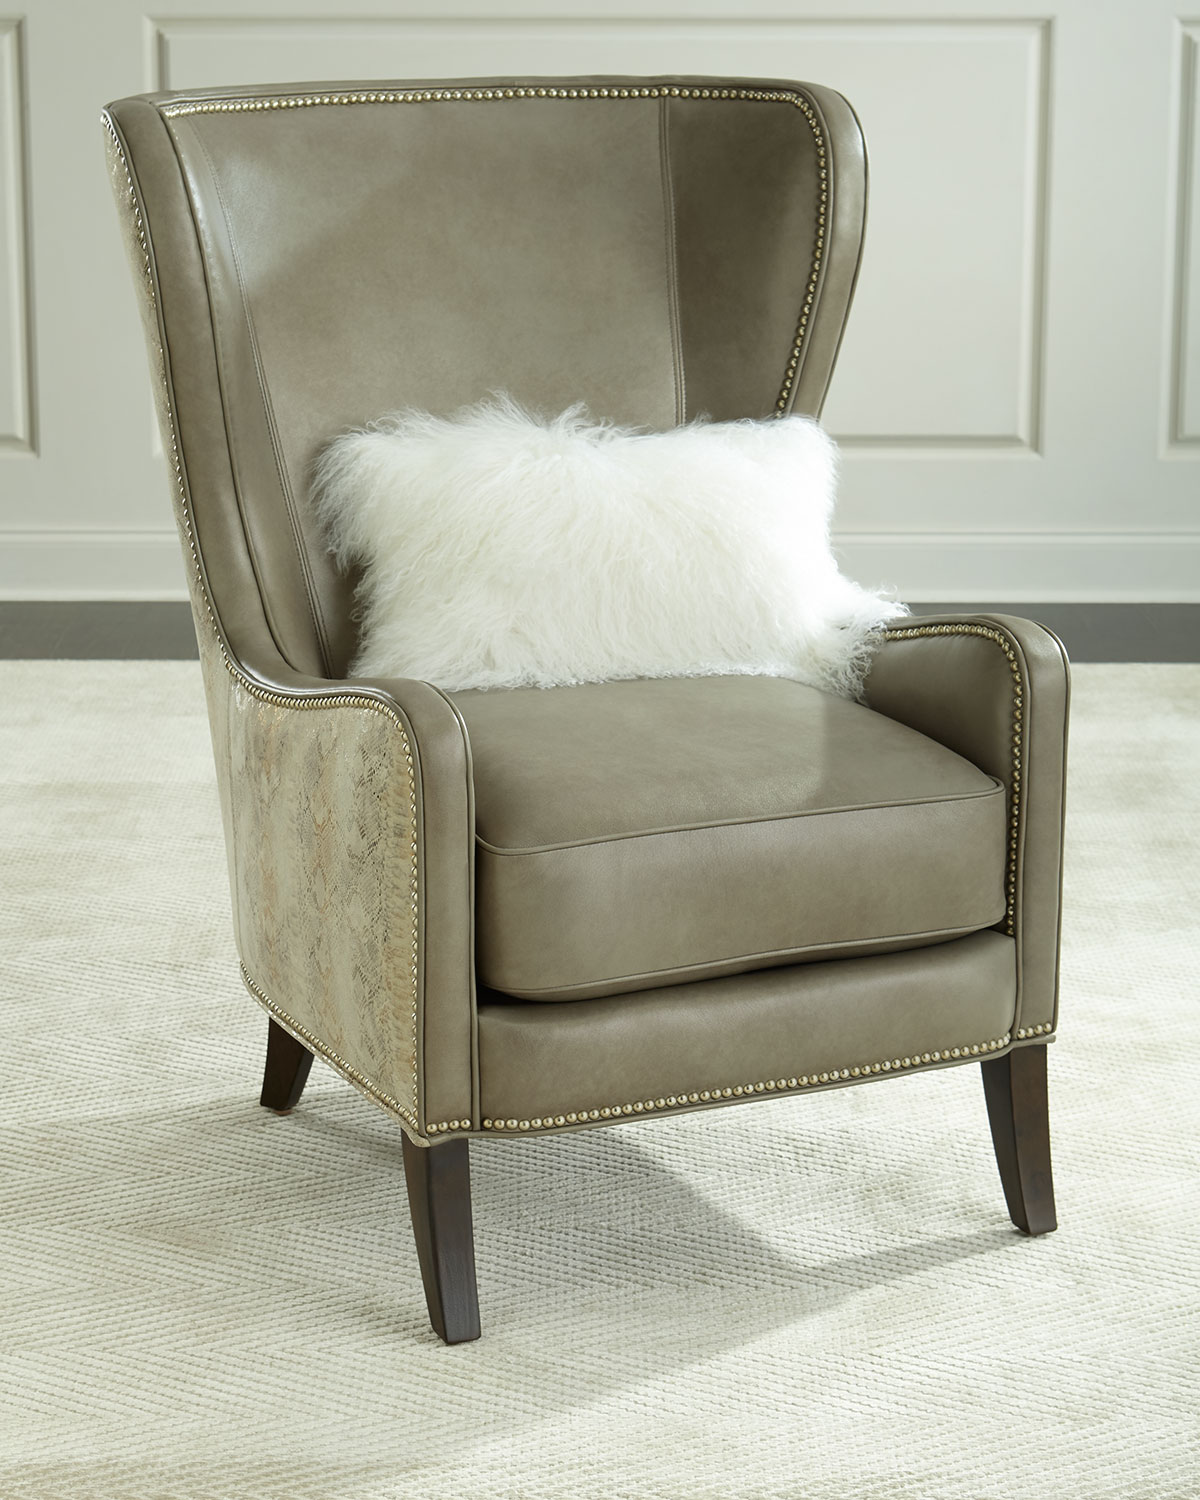 Wing Back Chairs Pelham Leather Wingback Chair Gray Metallic